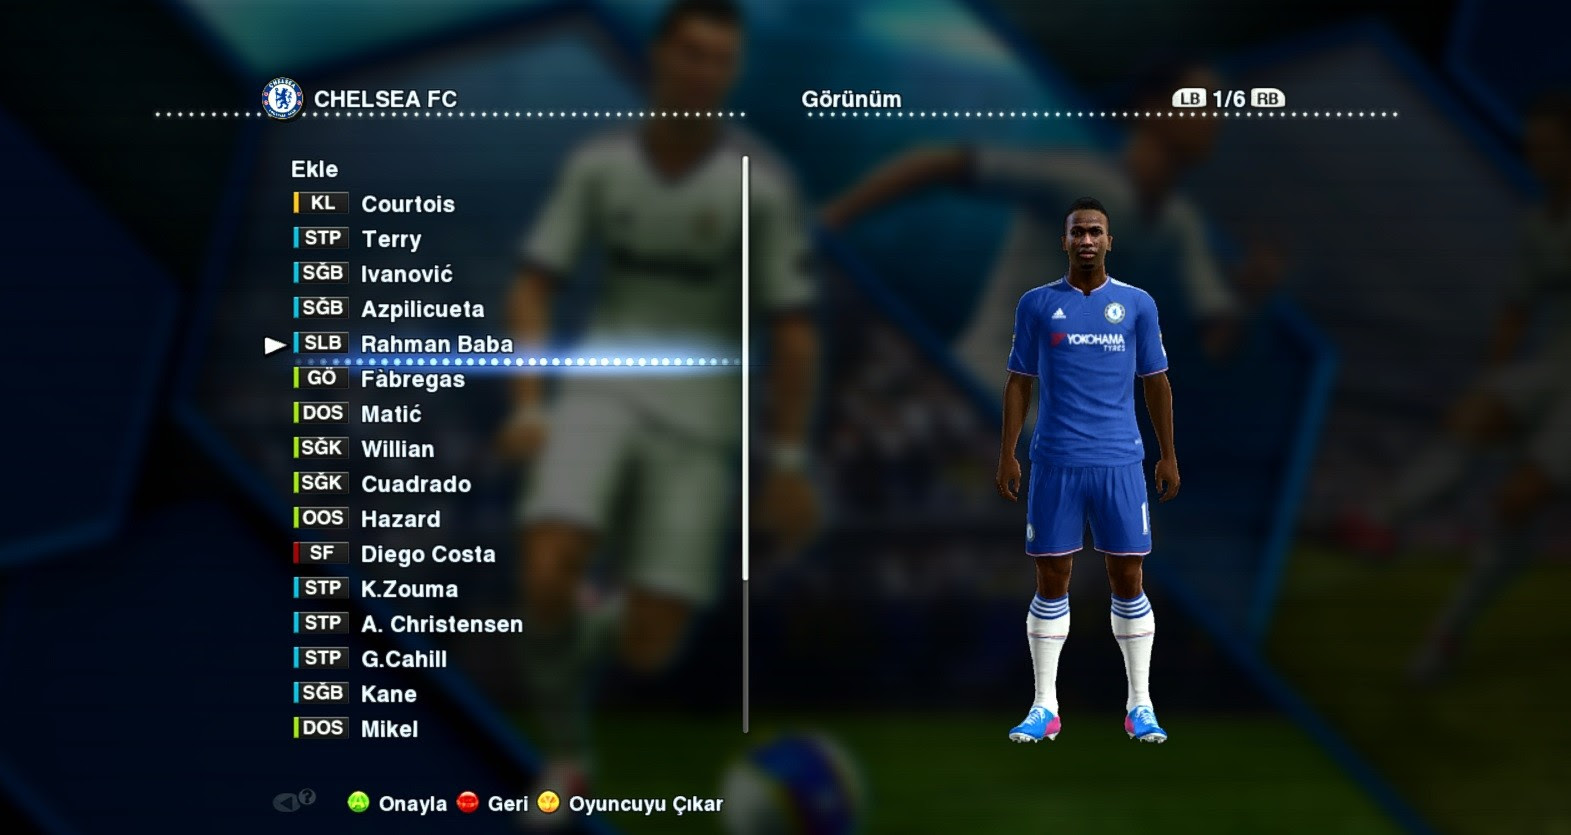 PES 2013 NEW UPDATE OPTION FILE 21.8.2015 PESEDIT 6.0 BY FERHAT SARKIN